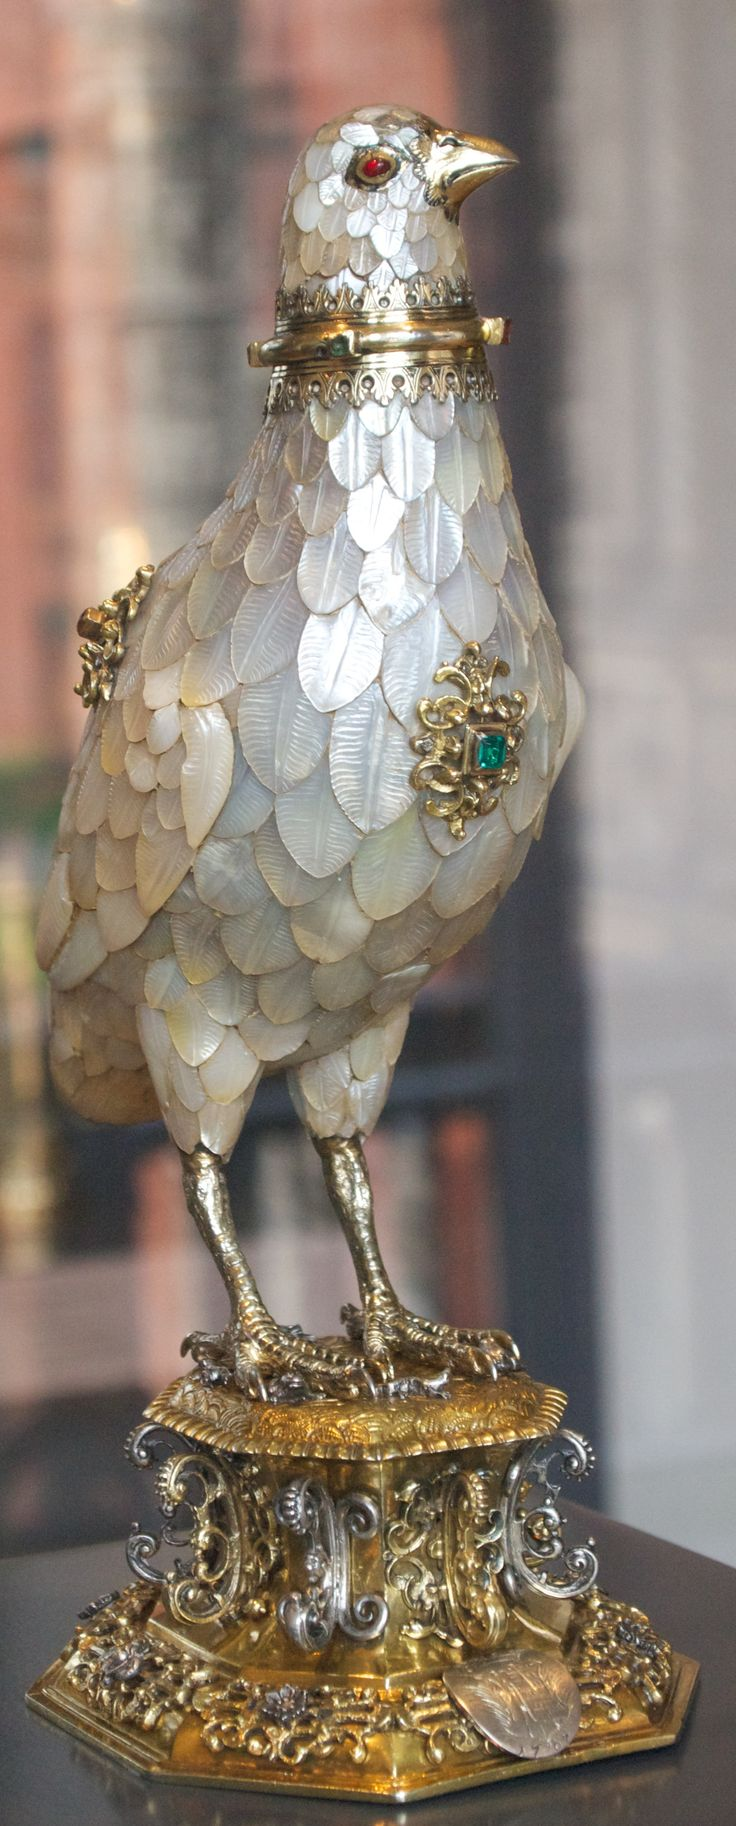 1660 ~ Partridge Cup made in Germany by Jorg Ruel .... Silver-gilt, Gold, Gems & Mother of Pearl ....